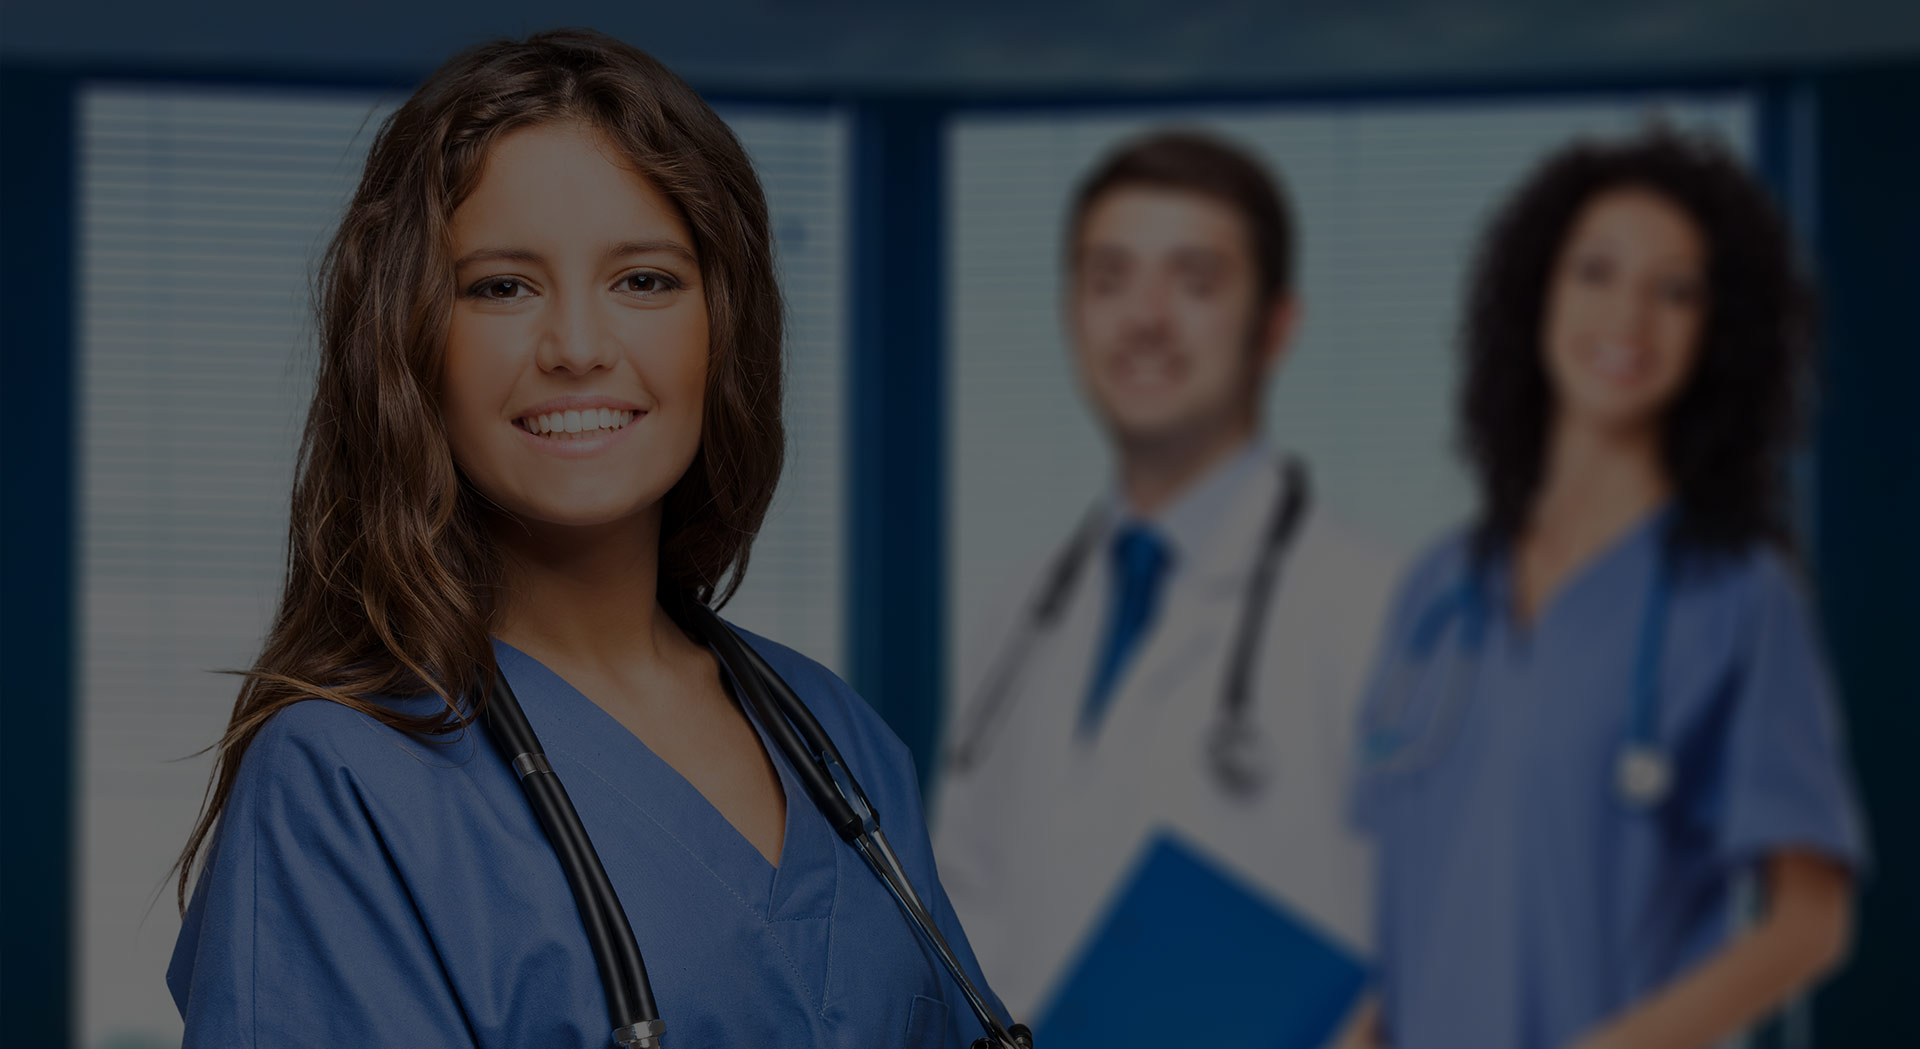 How to Choose a Medical Assisting Degree Program